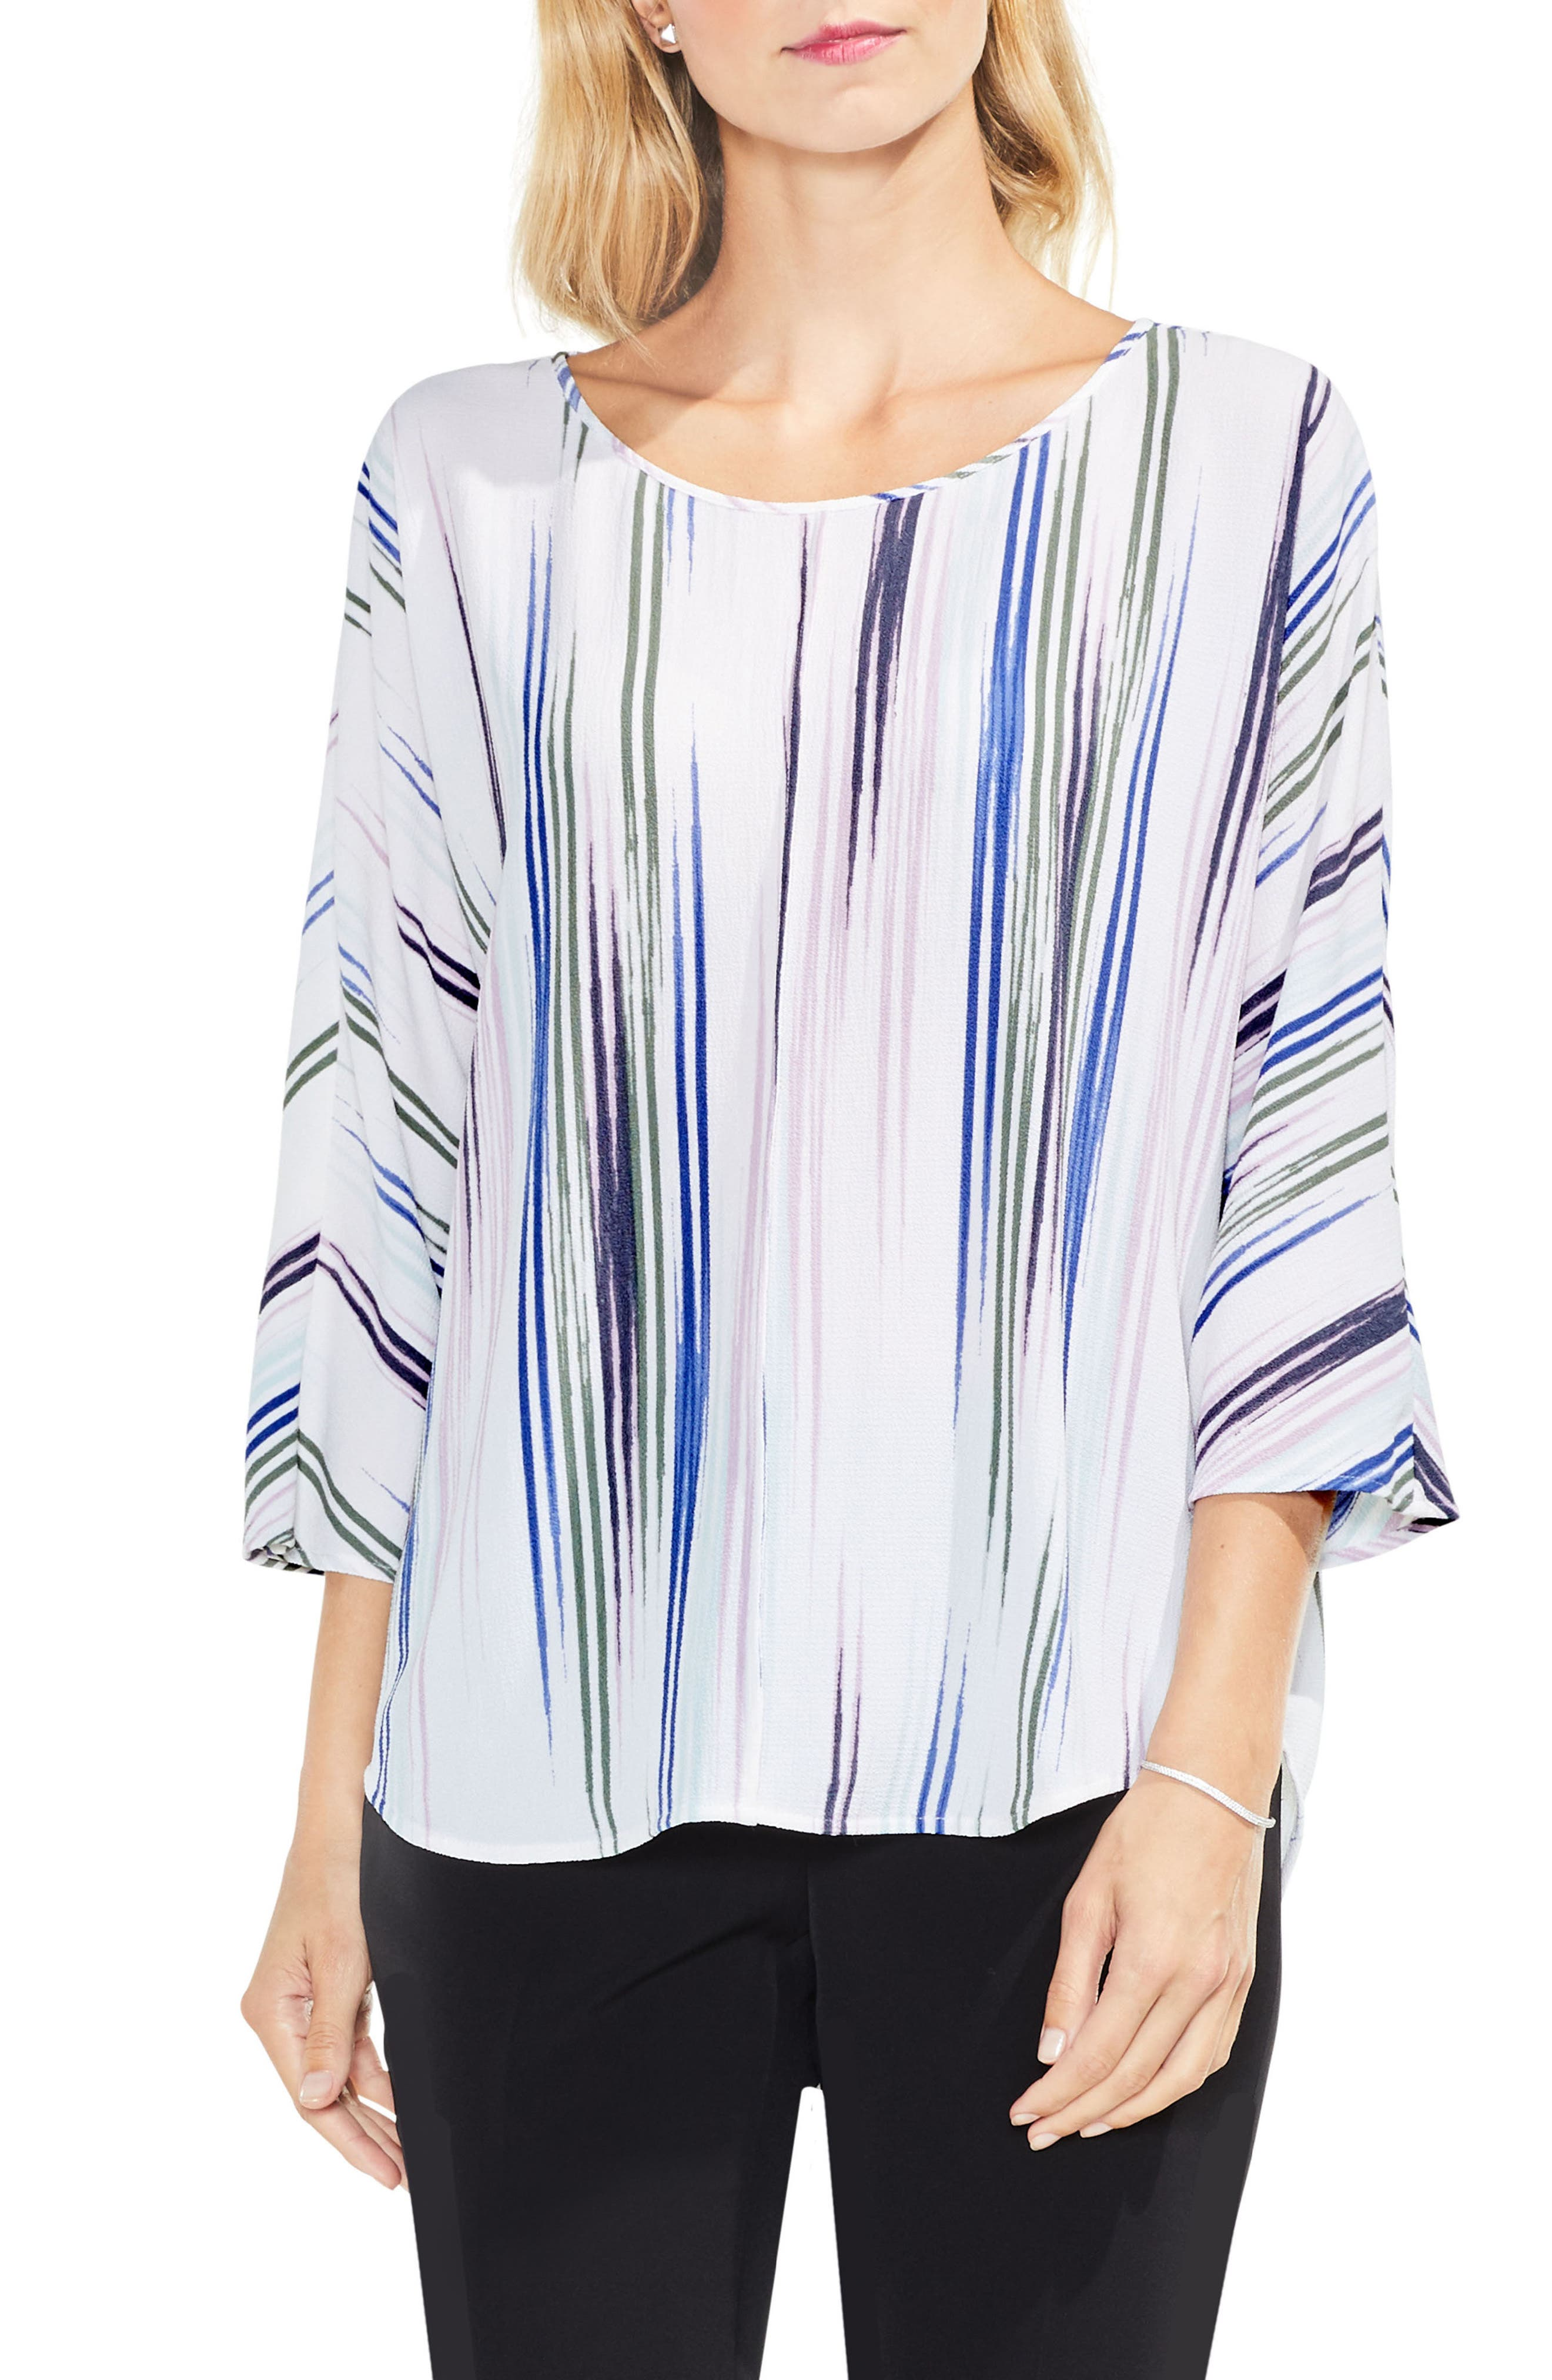 Alternate Image 1 Selected - Vince Camuto Colorful Peaks Top